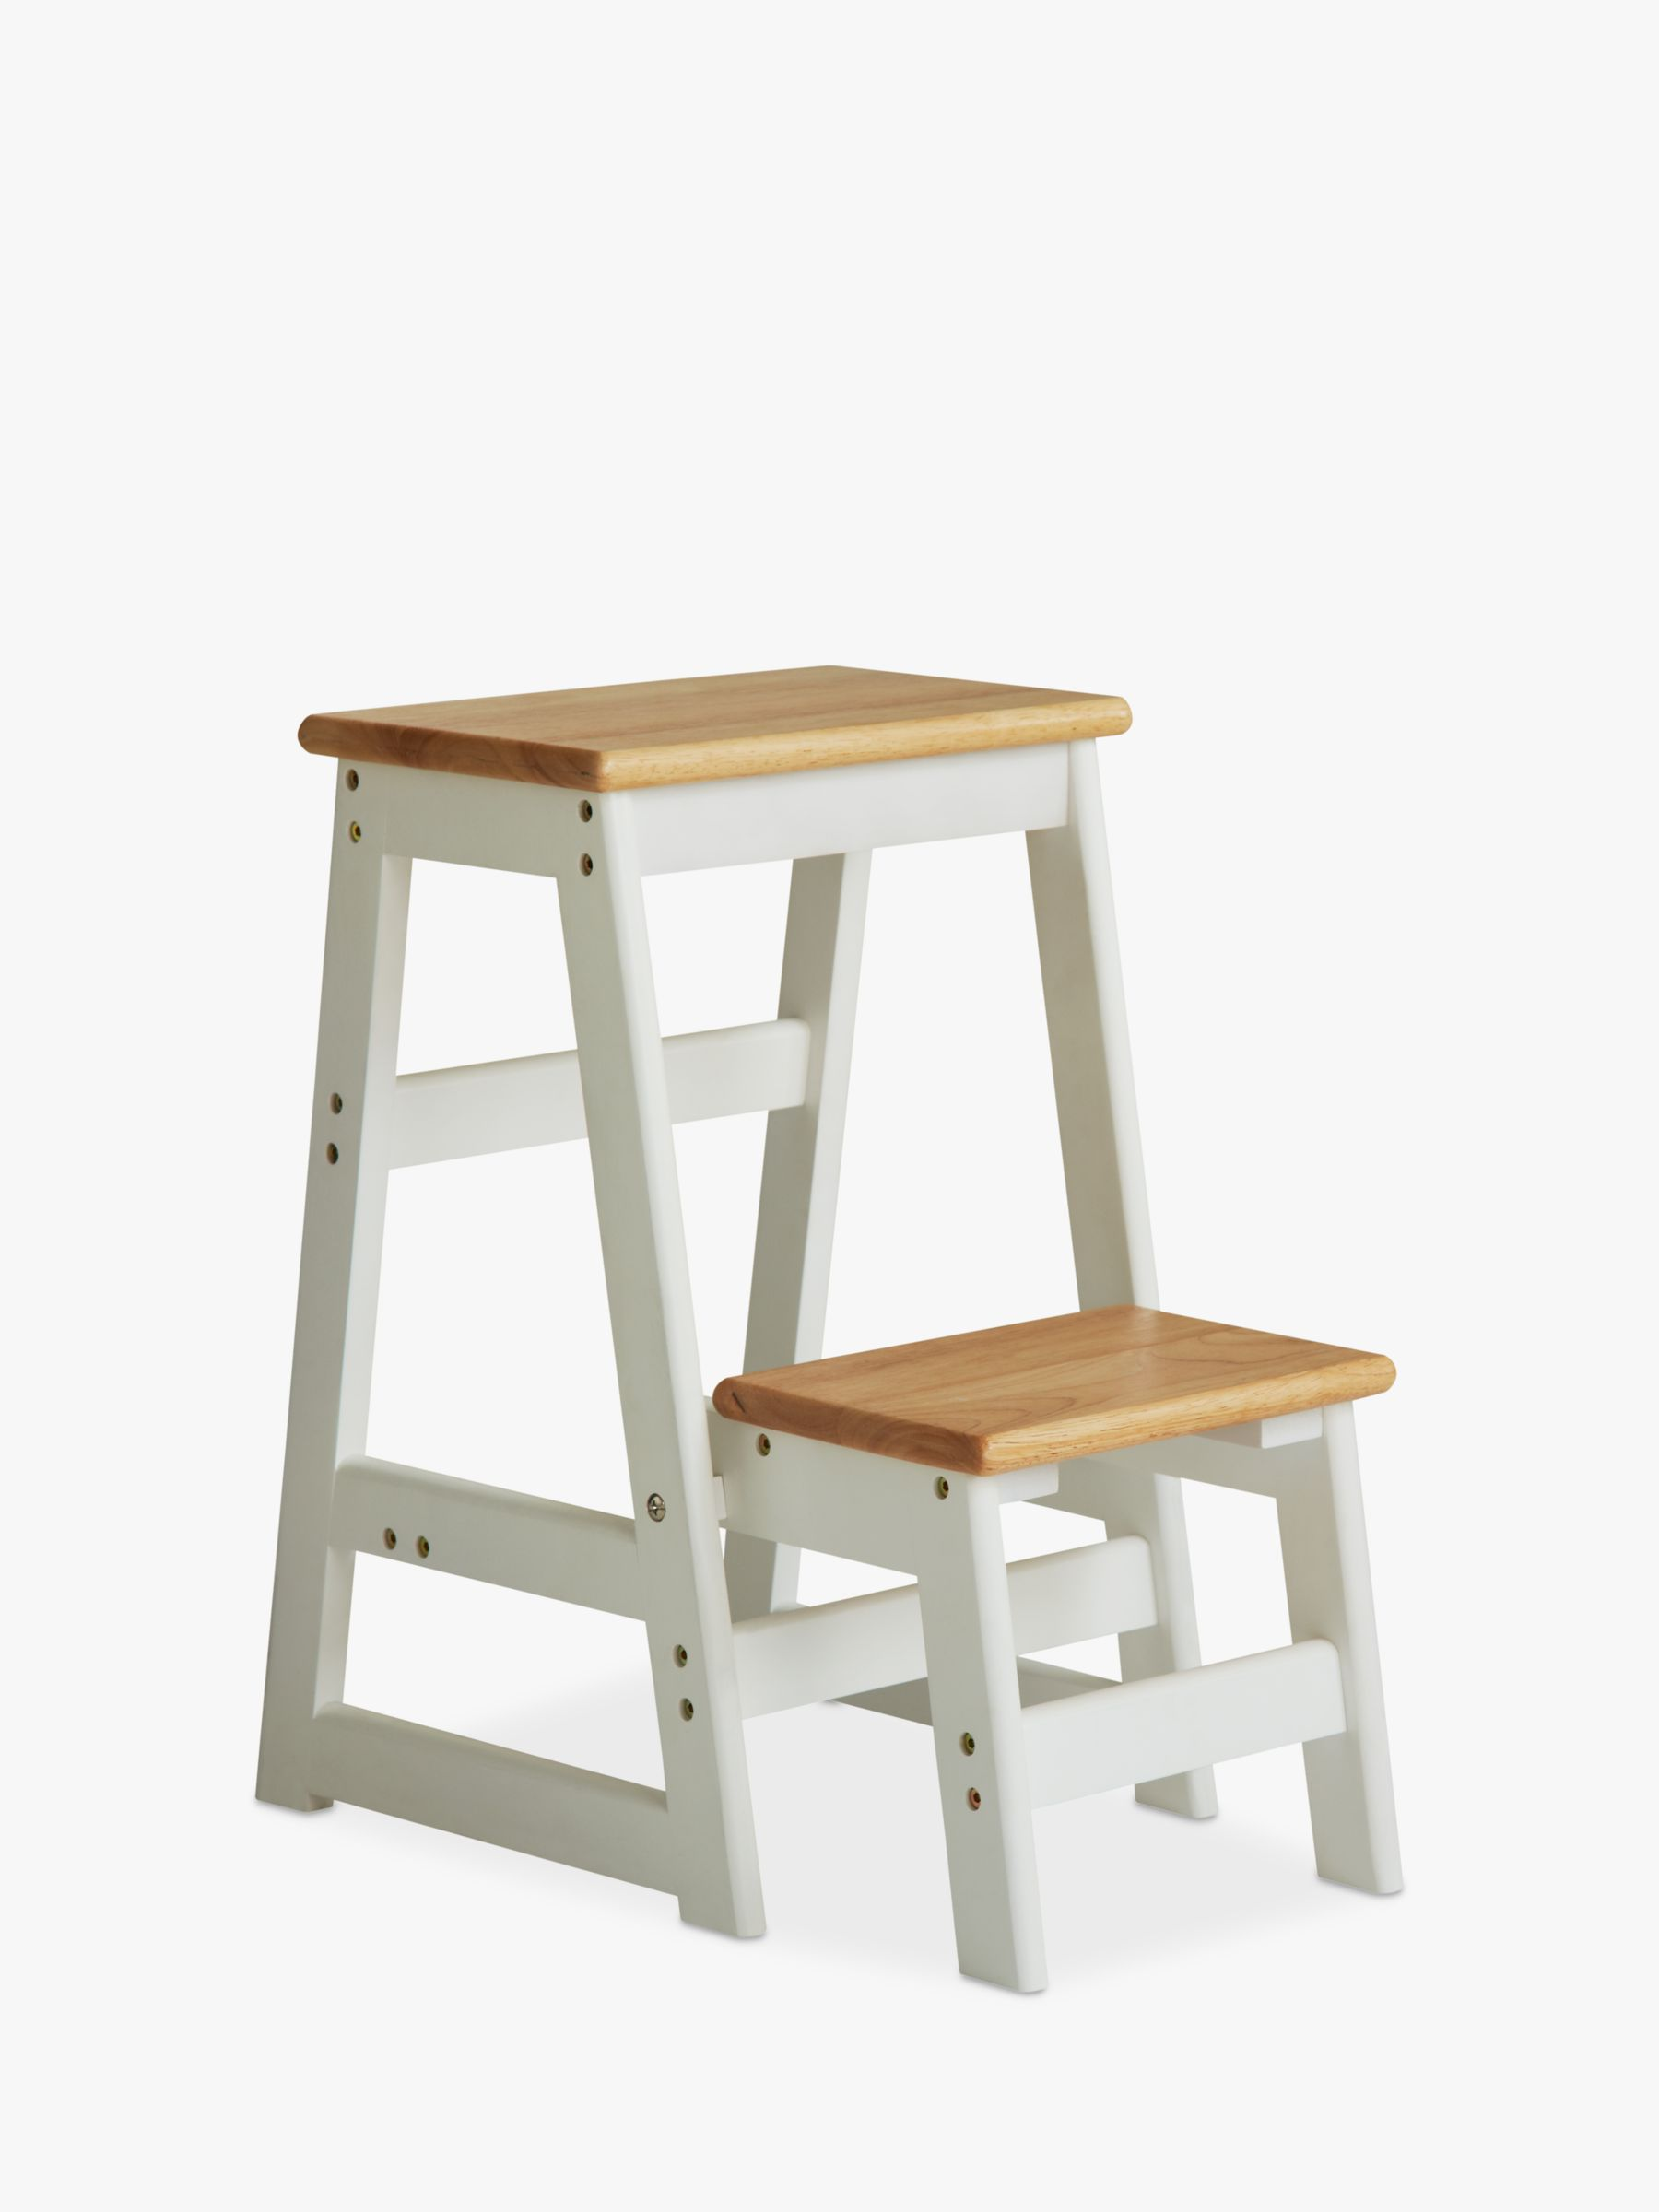 Wooden Step Stool Chair House By John Lewis Fixed Wooden Step Stool At John Lewis